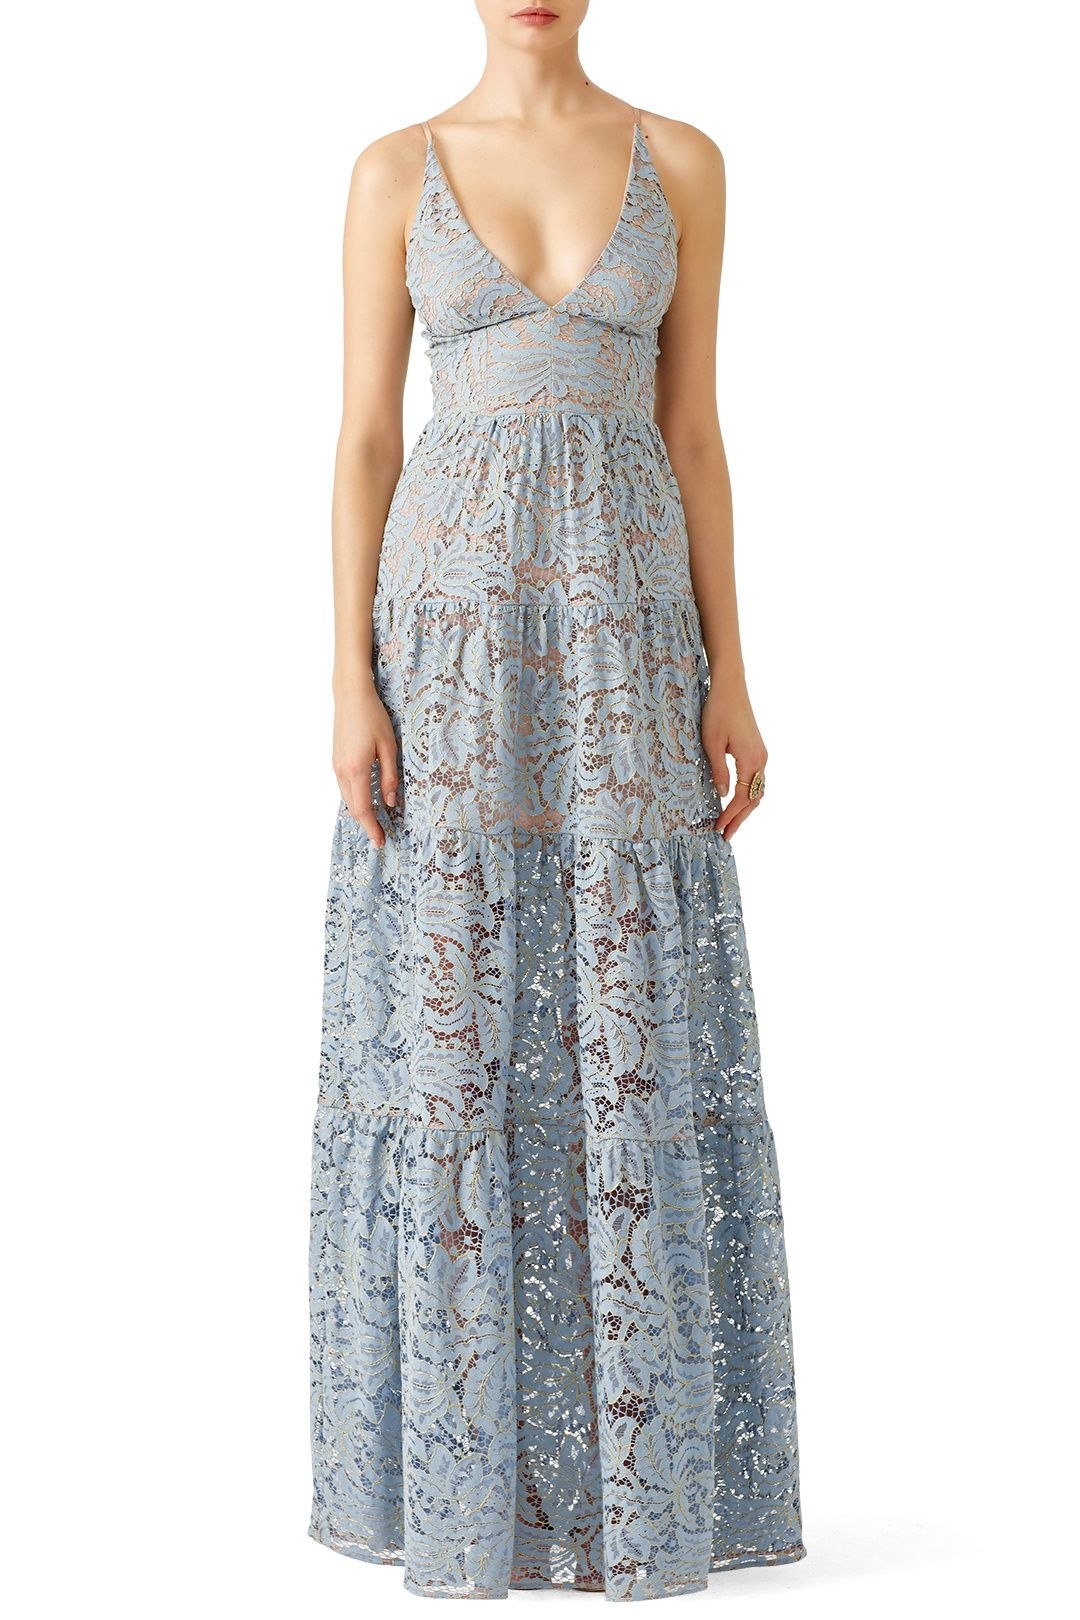 7b5dba0e90 Rent Blue Melina Lace Maxi by Dress The Population for $40 only at Rent the  Runway.